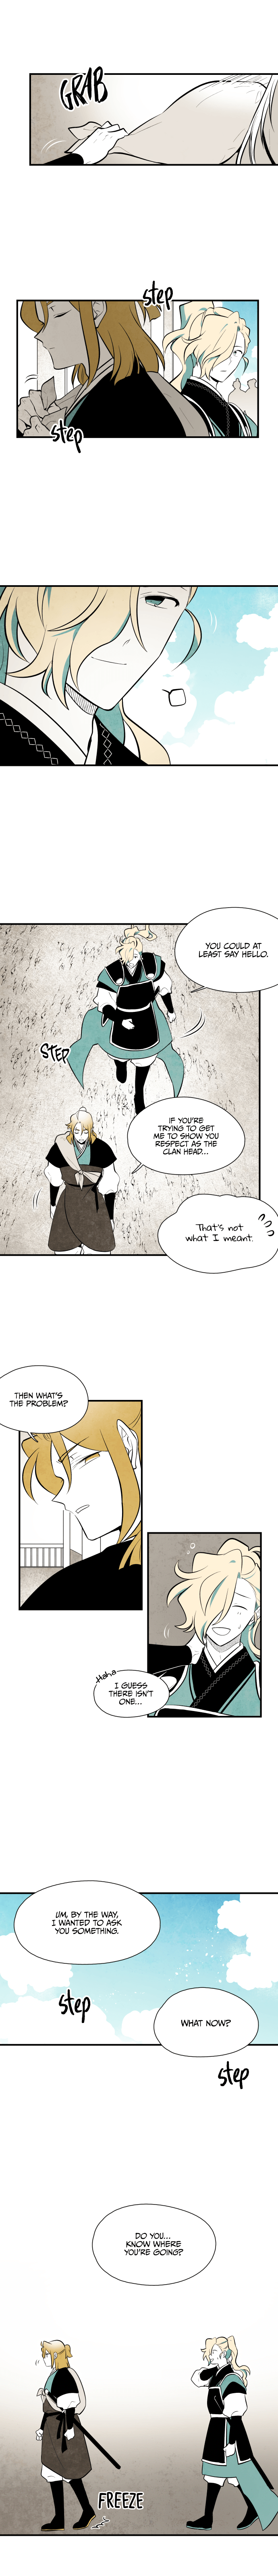 Manga The Flower That Was Bloomed By A Cloud - Chapter 71 Page 1